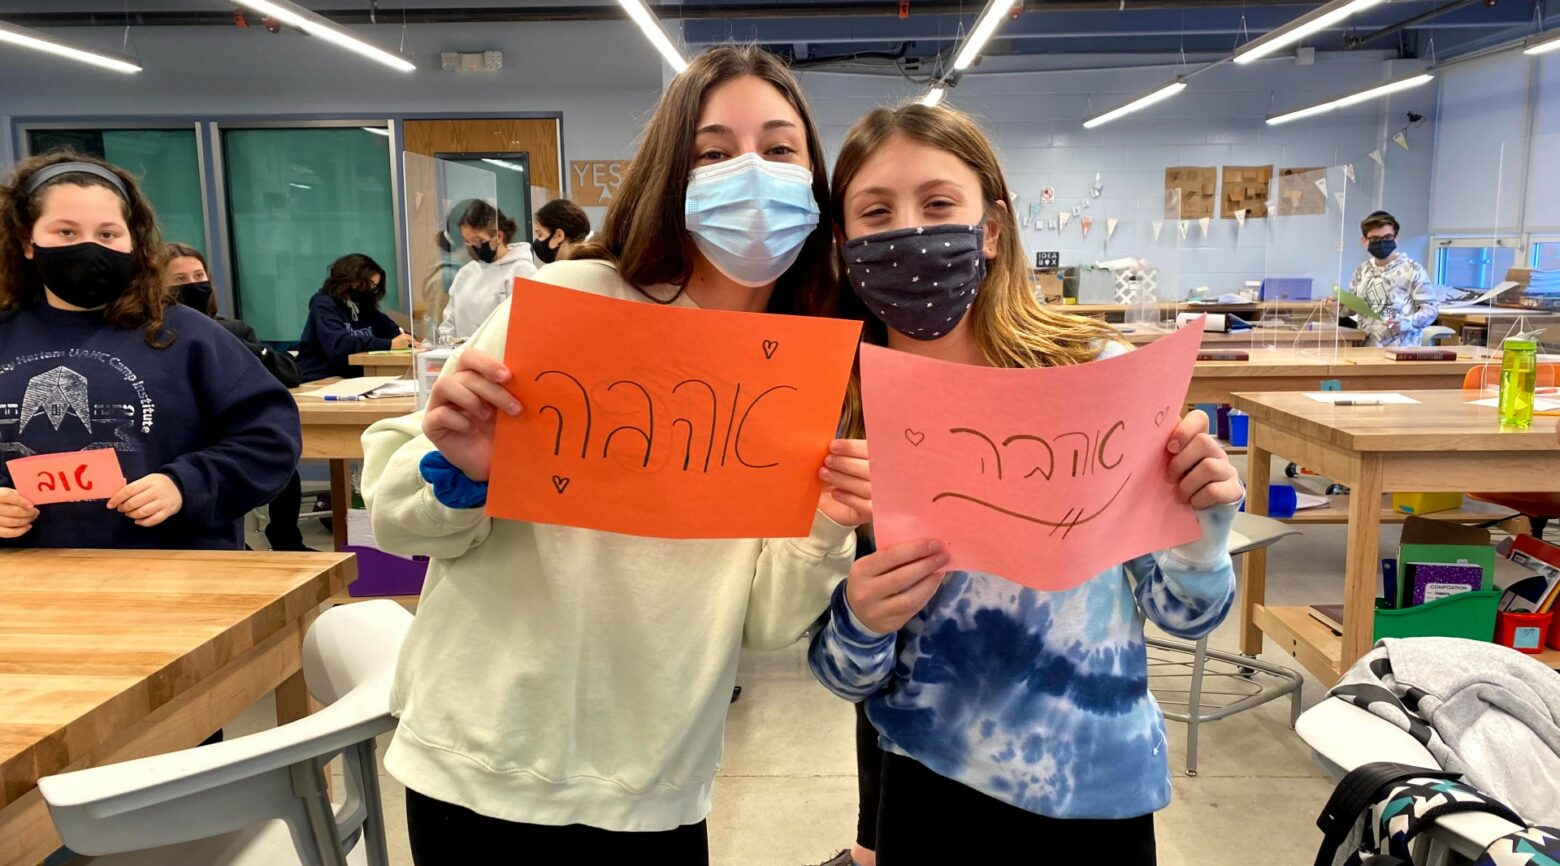 Jewish day school students, like these at the Solomon Schechter Day School of Bergen County bearing signs with the Hebrew word for love, are increasingly pushing their schools to explore how they can foster greater diversity, equity and inclusion both in school and out in the world.